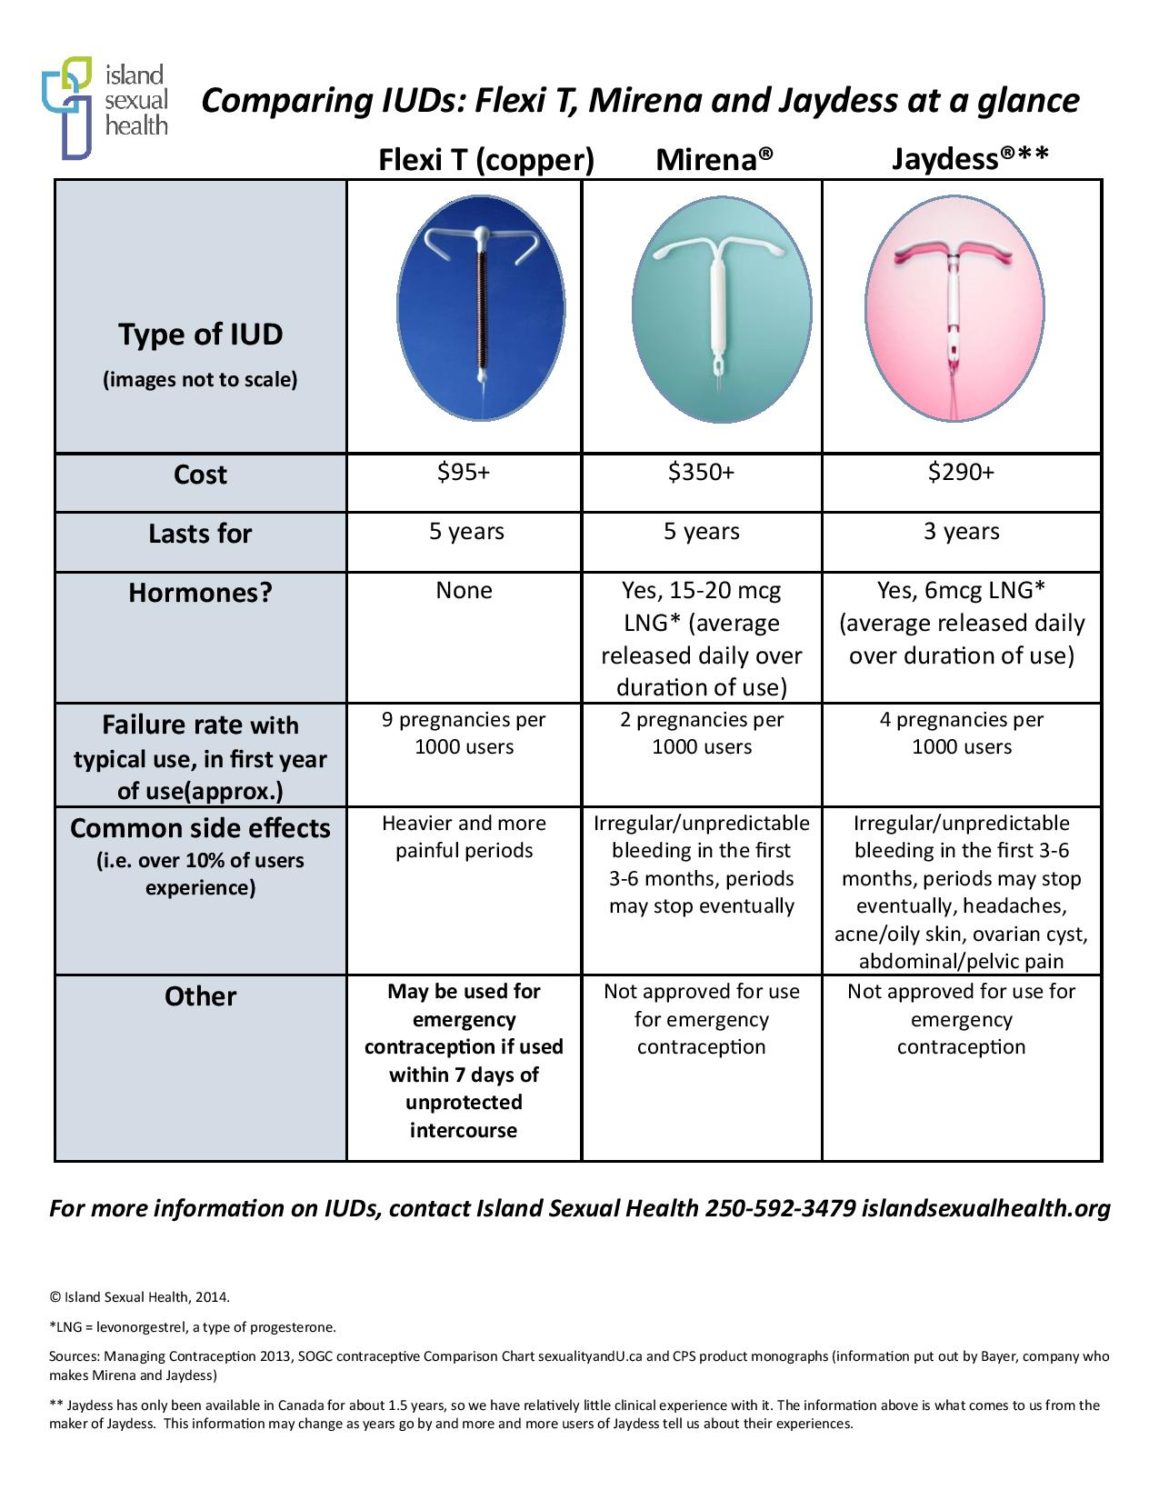 Comparing iuds copper mirena and jaydess island sexual health iud comparison chart nvjuhfo Gallery